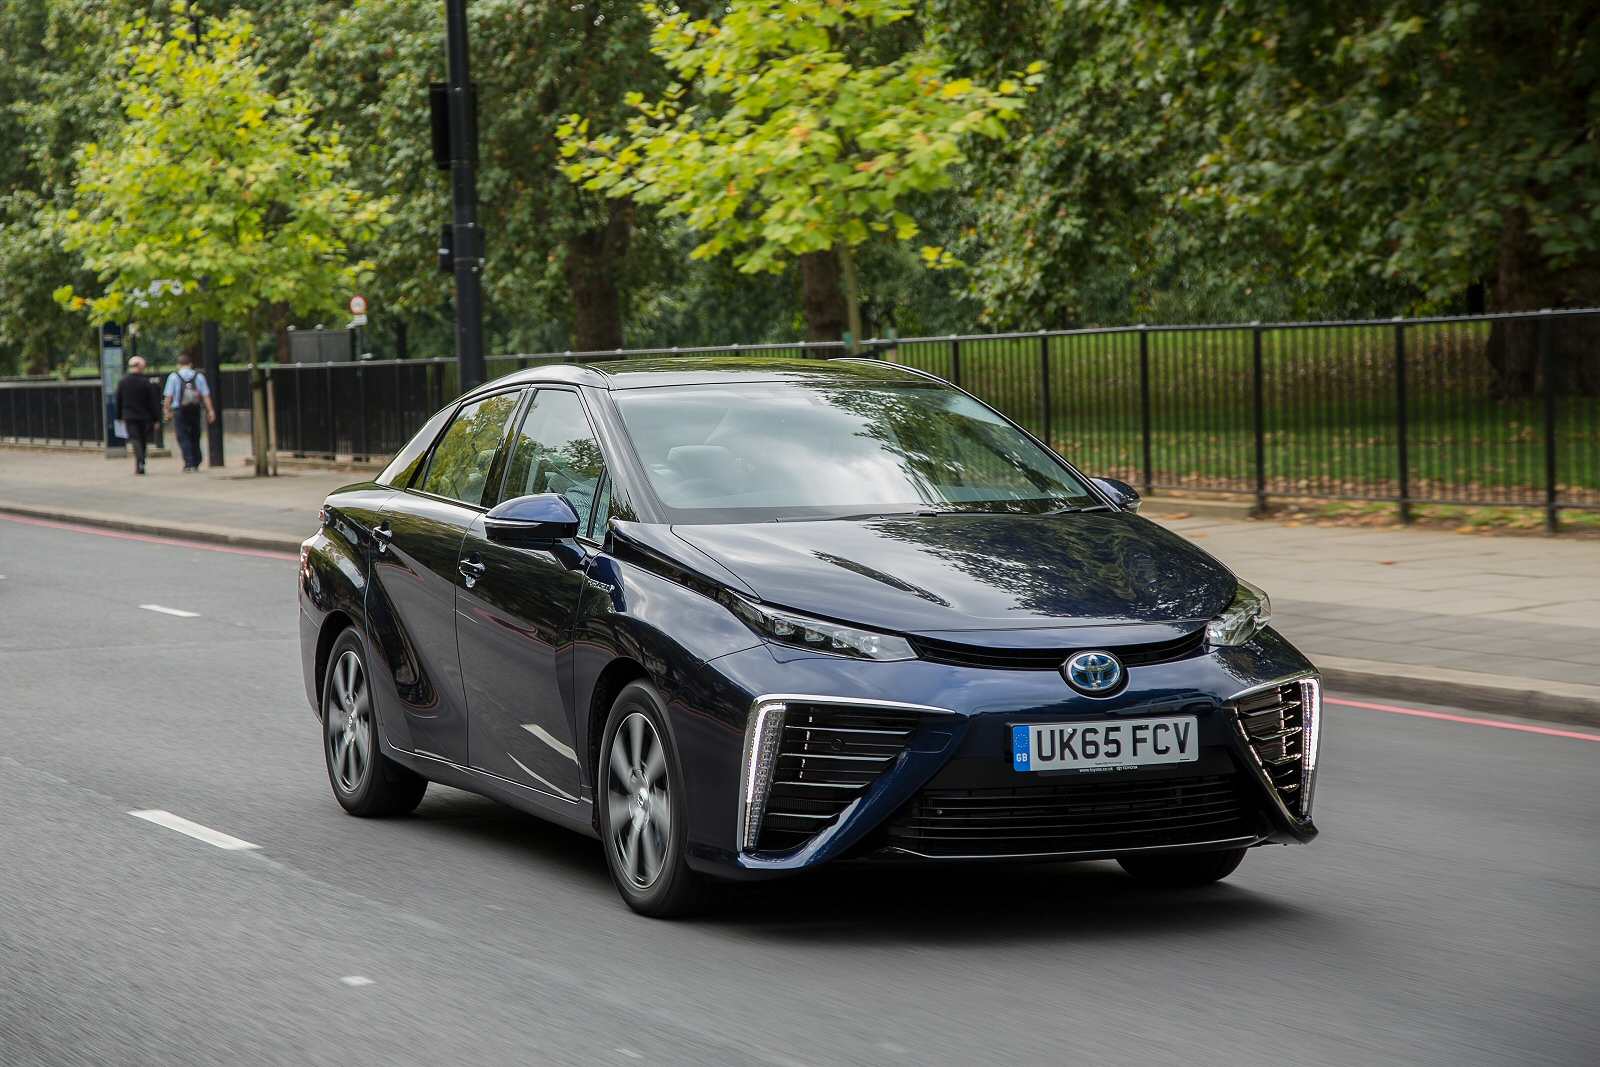 Hydrogen Cars Lost Much Of Their Support, But Why?